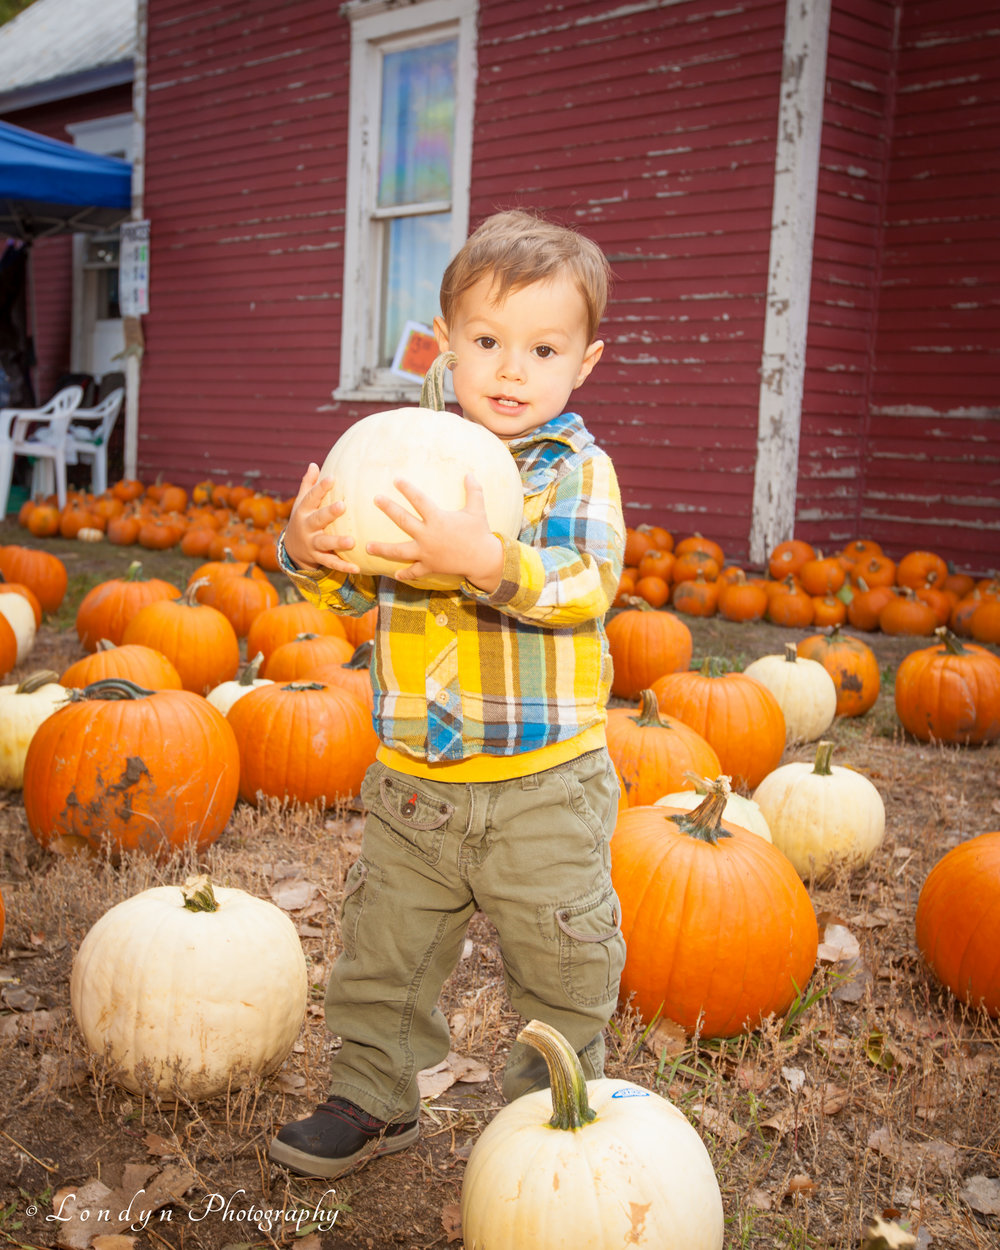 2014_11 October_WMMI_Reynolds Ranch Harvest Festival_Londyn Photography-...-1.jpg